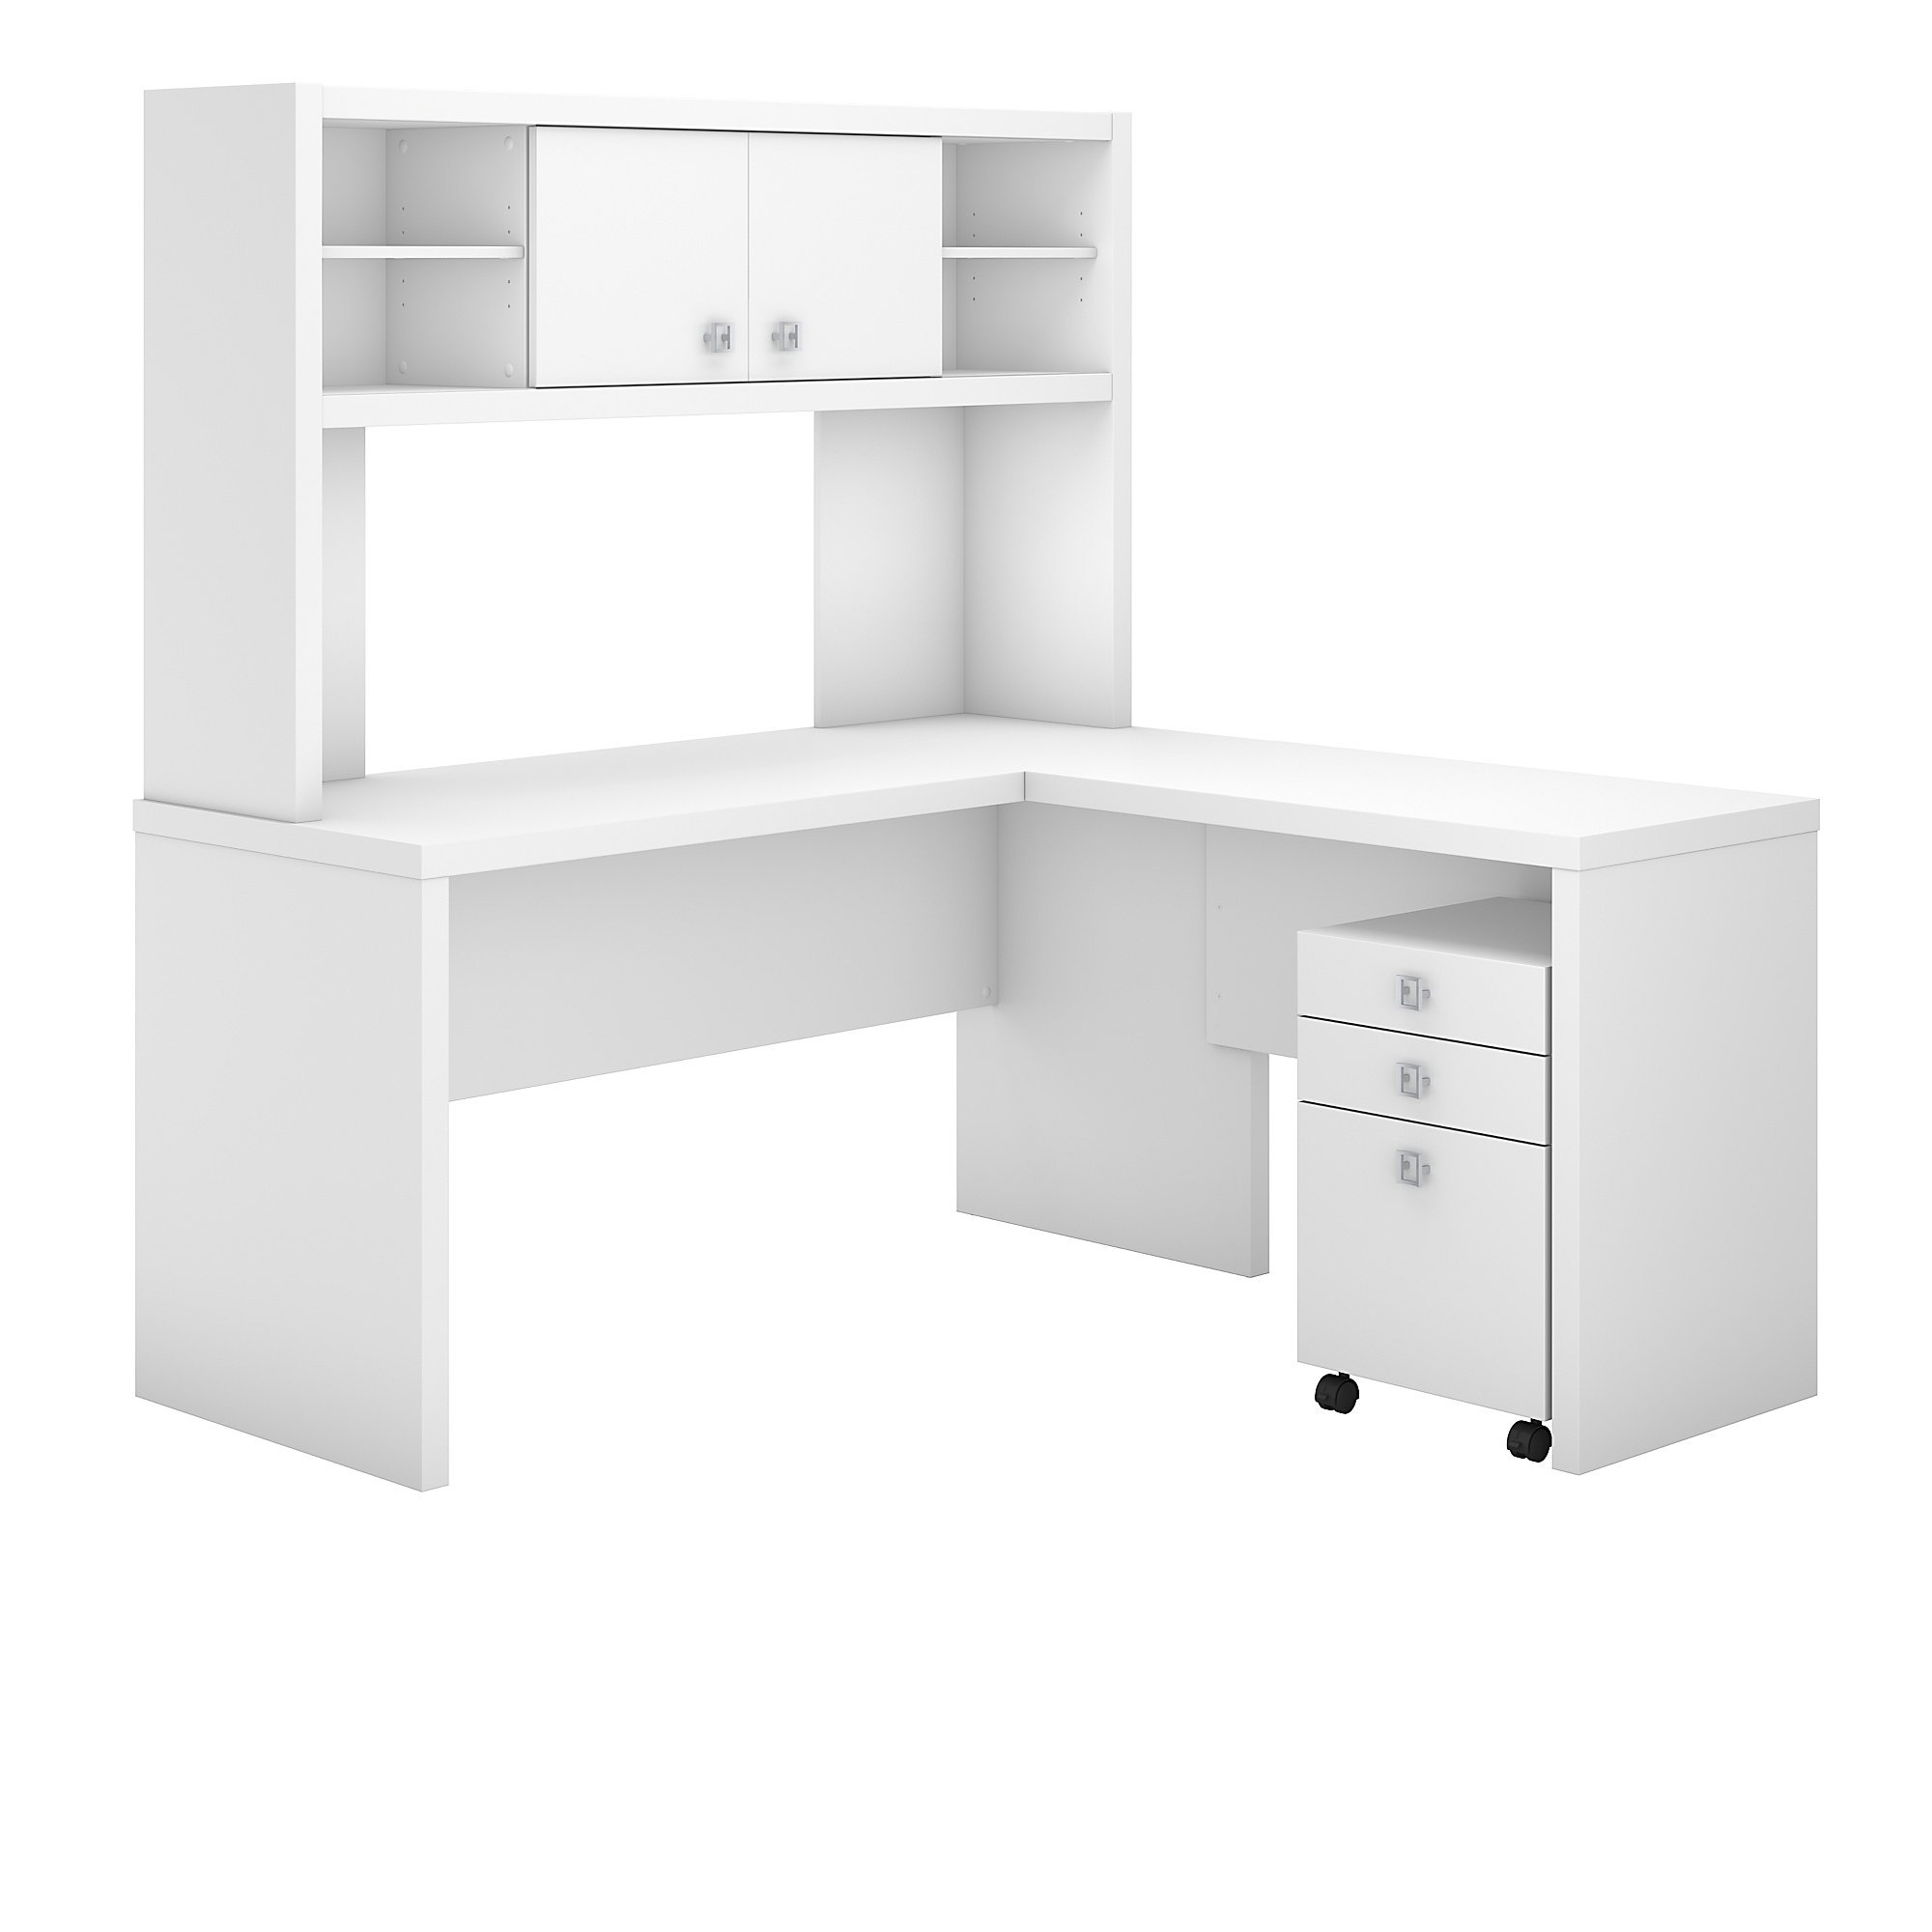 Office by kathy ireland Echo L Shaped Desk with Hutch and Mobile File Cabinet in Pure White